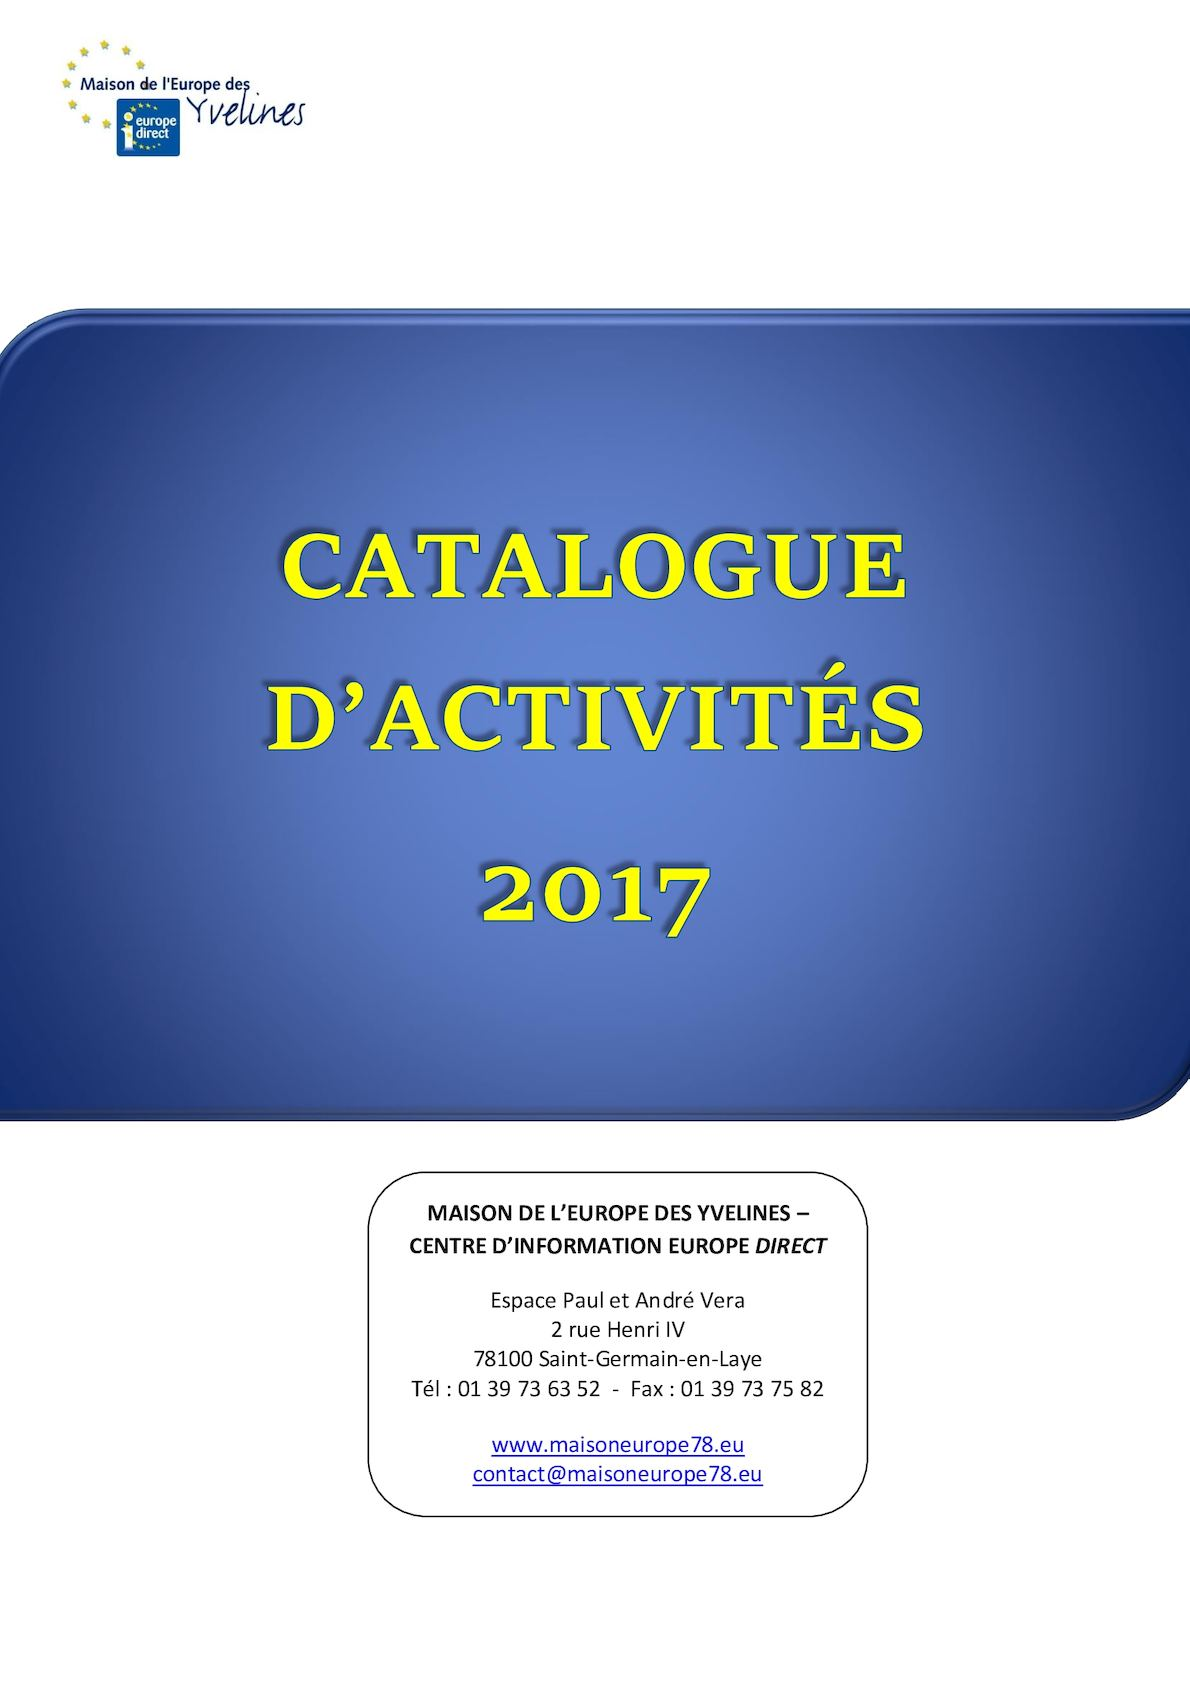 Calam o catalogue d 39 activit mdey cied 2017 for Activite yvelines